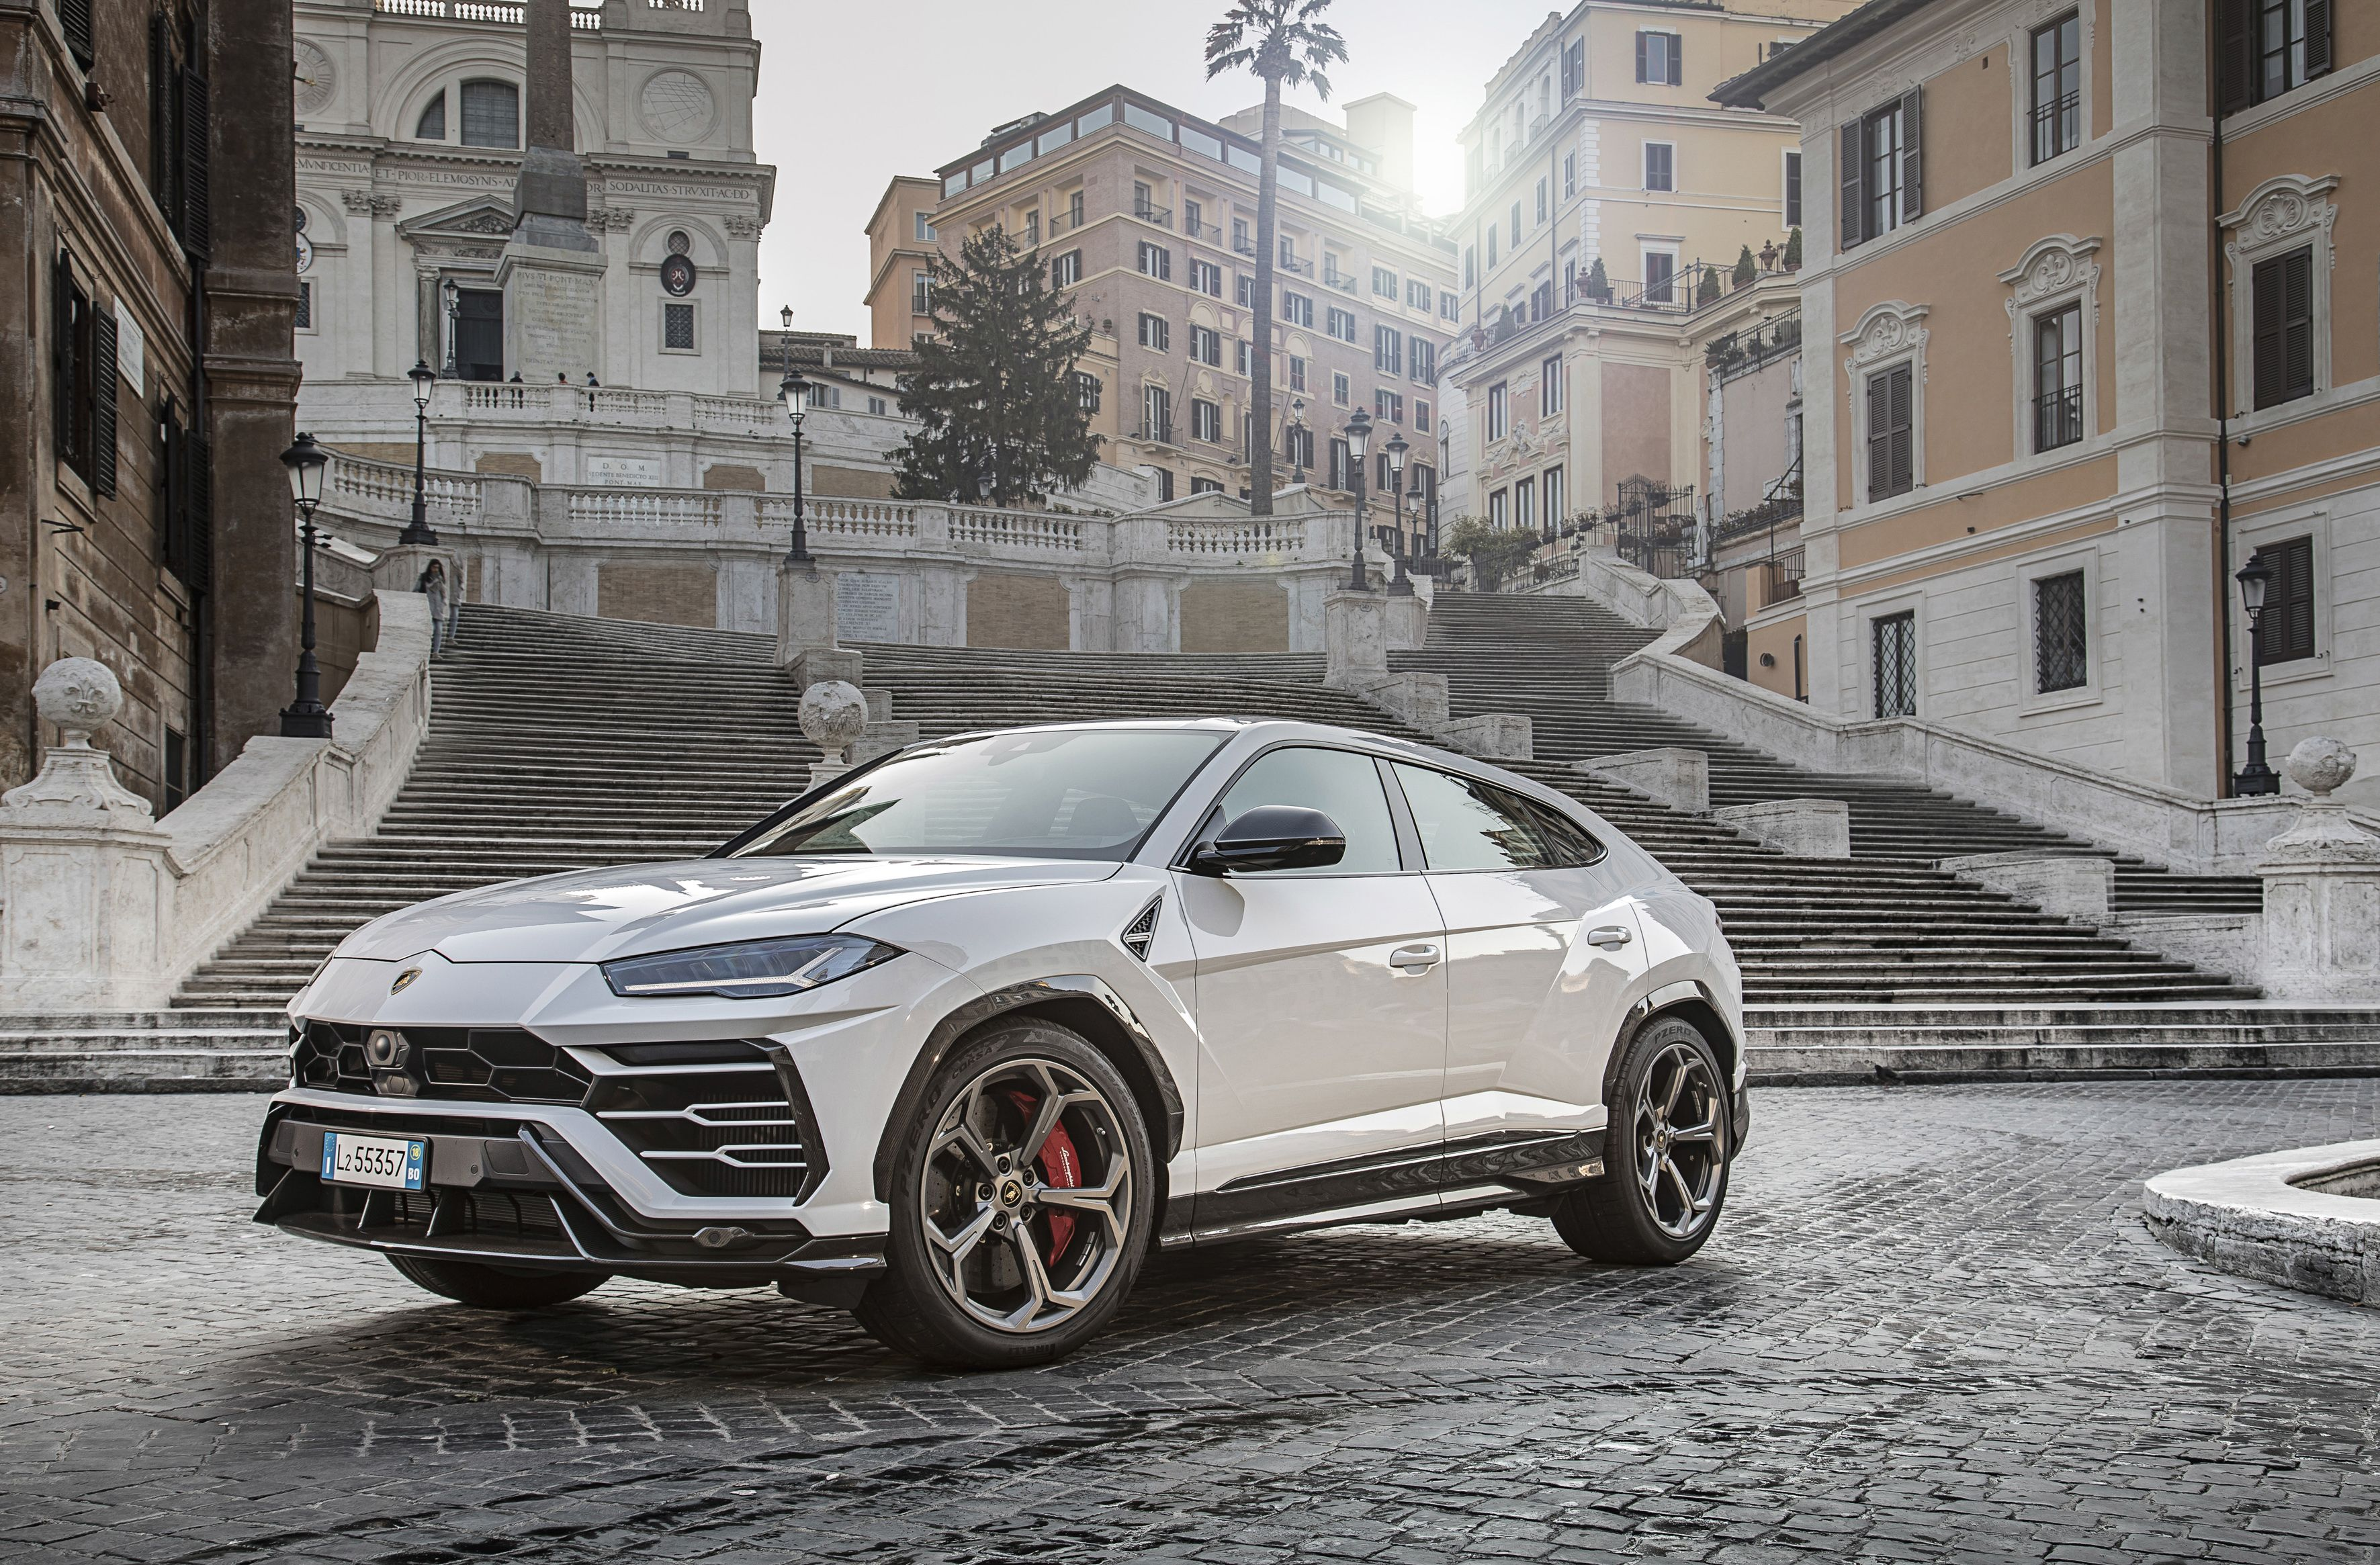 2020 Lamborghini Urus Review, Pricing, and Specs